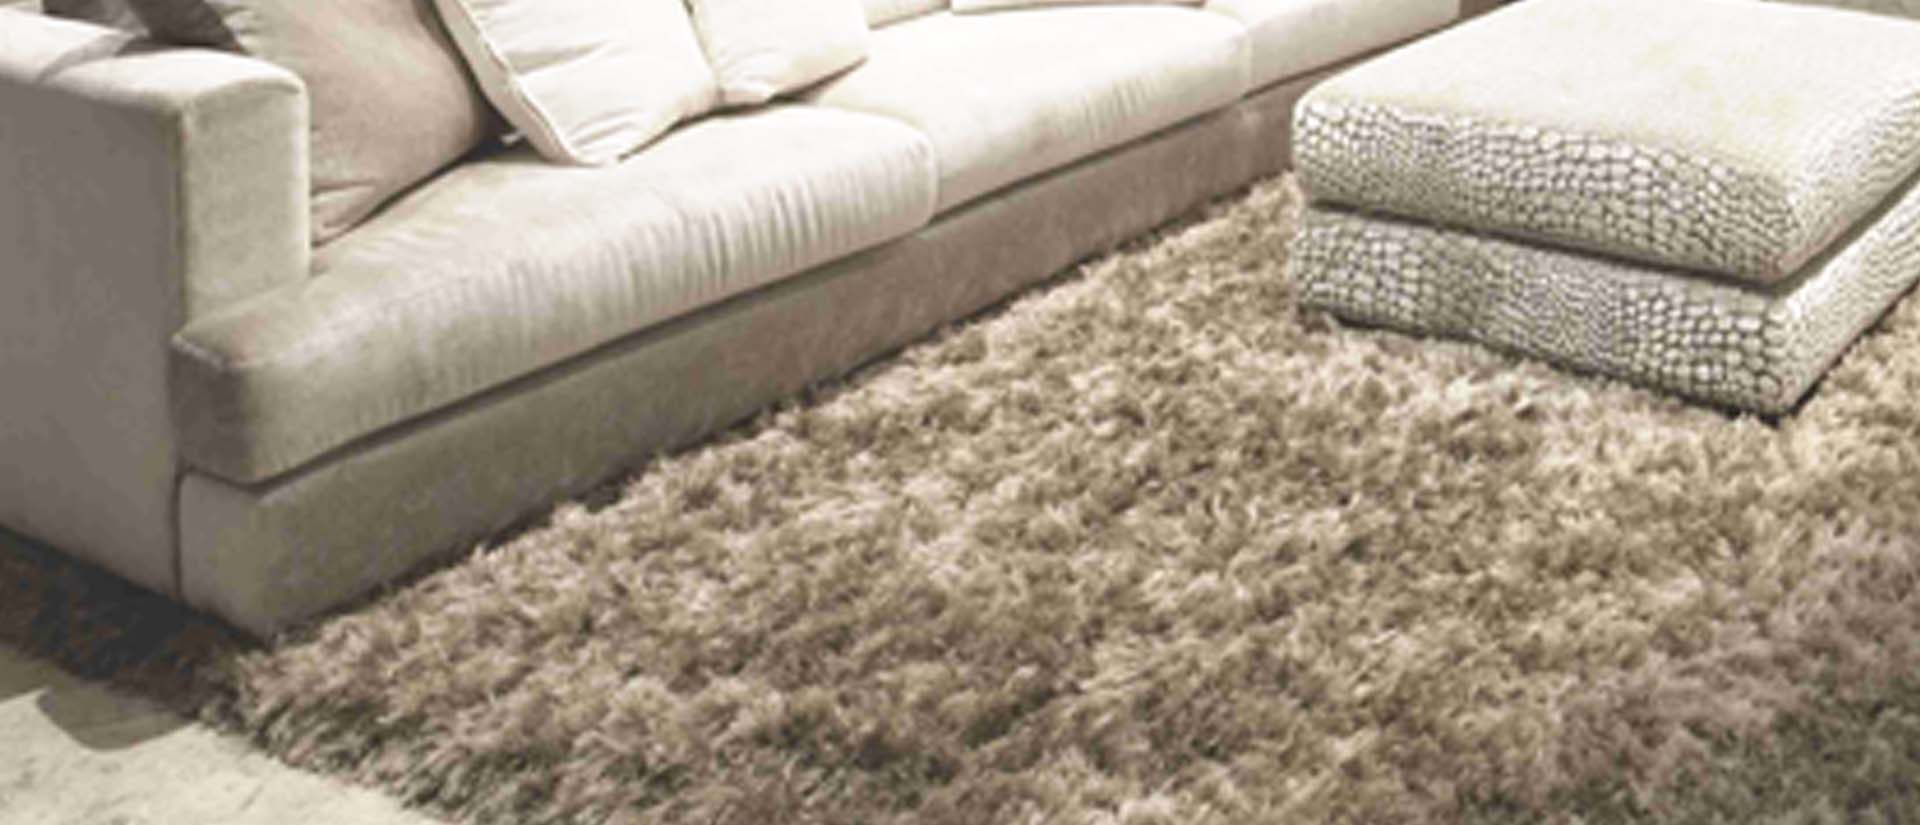 ambiente gold 1 itens